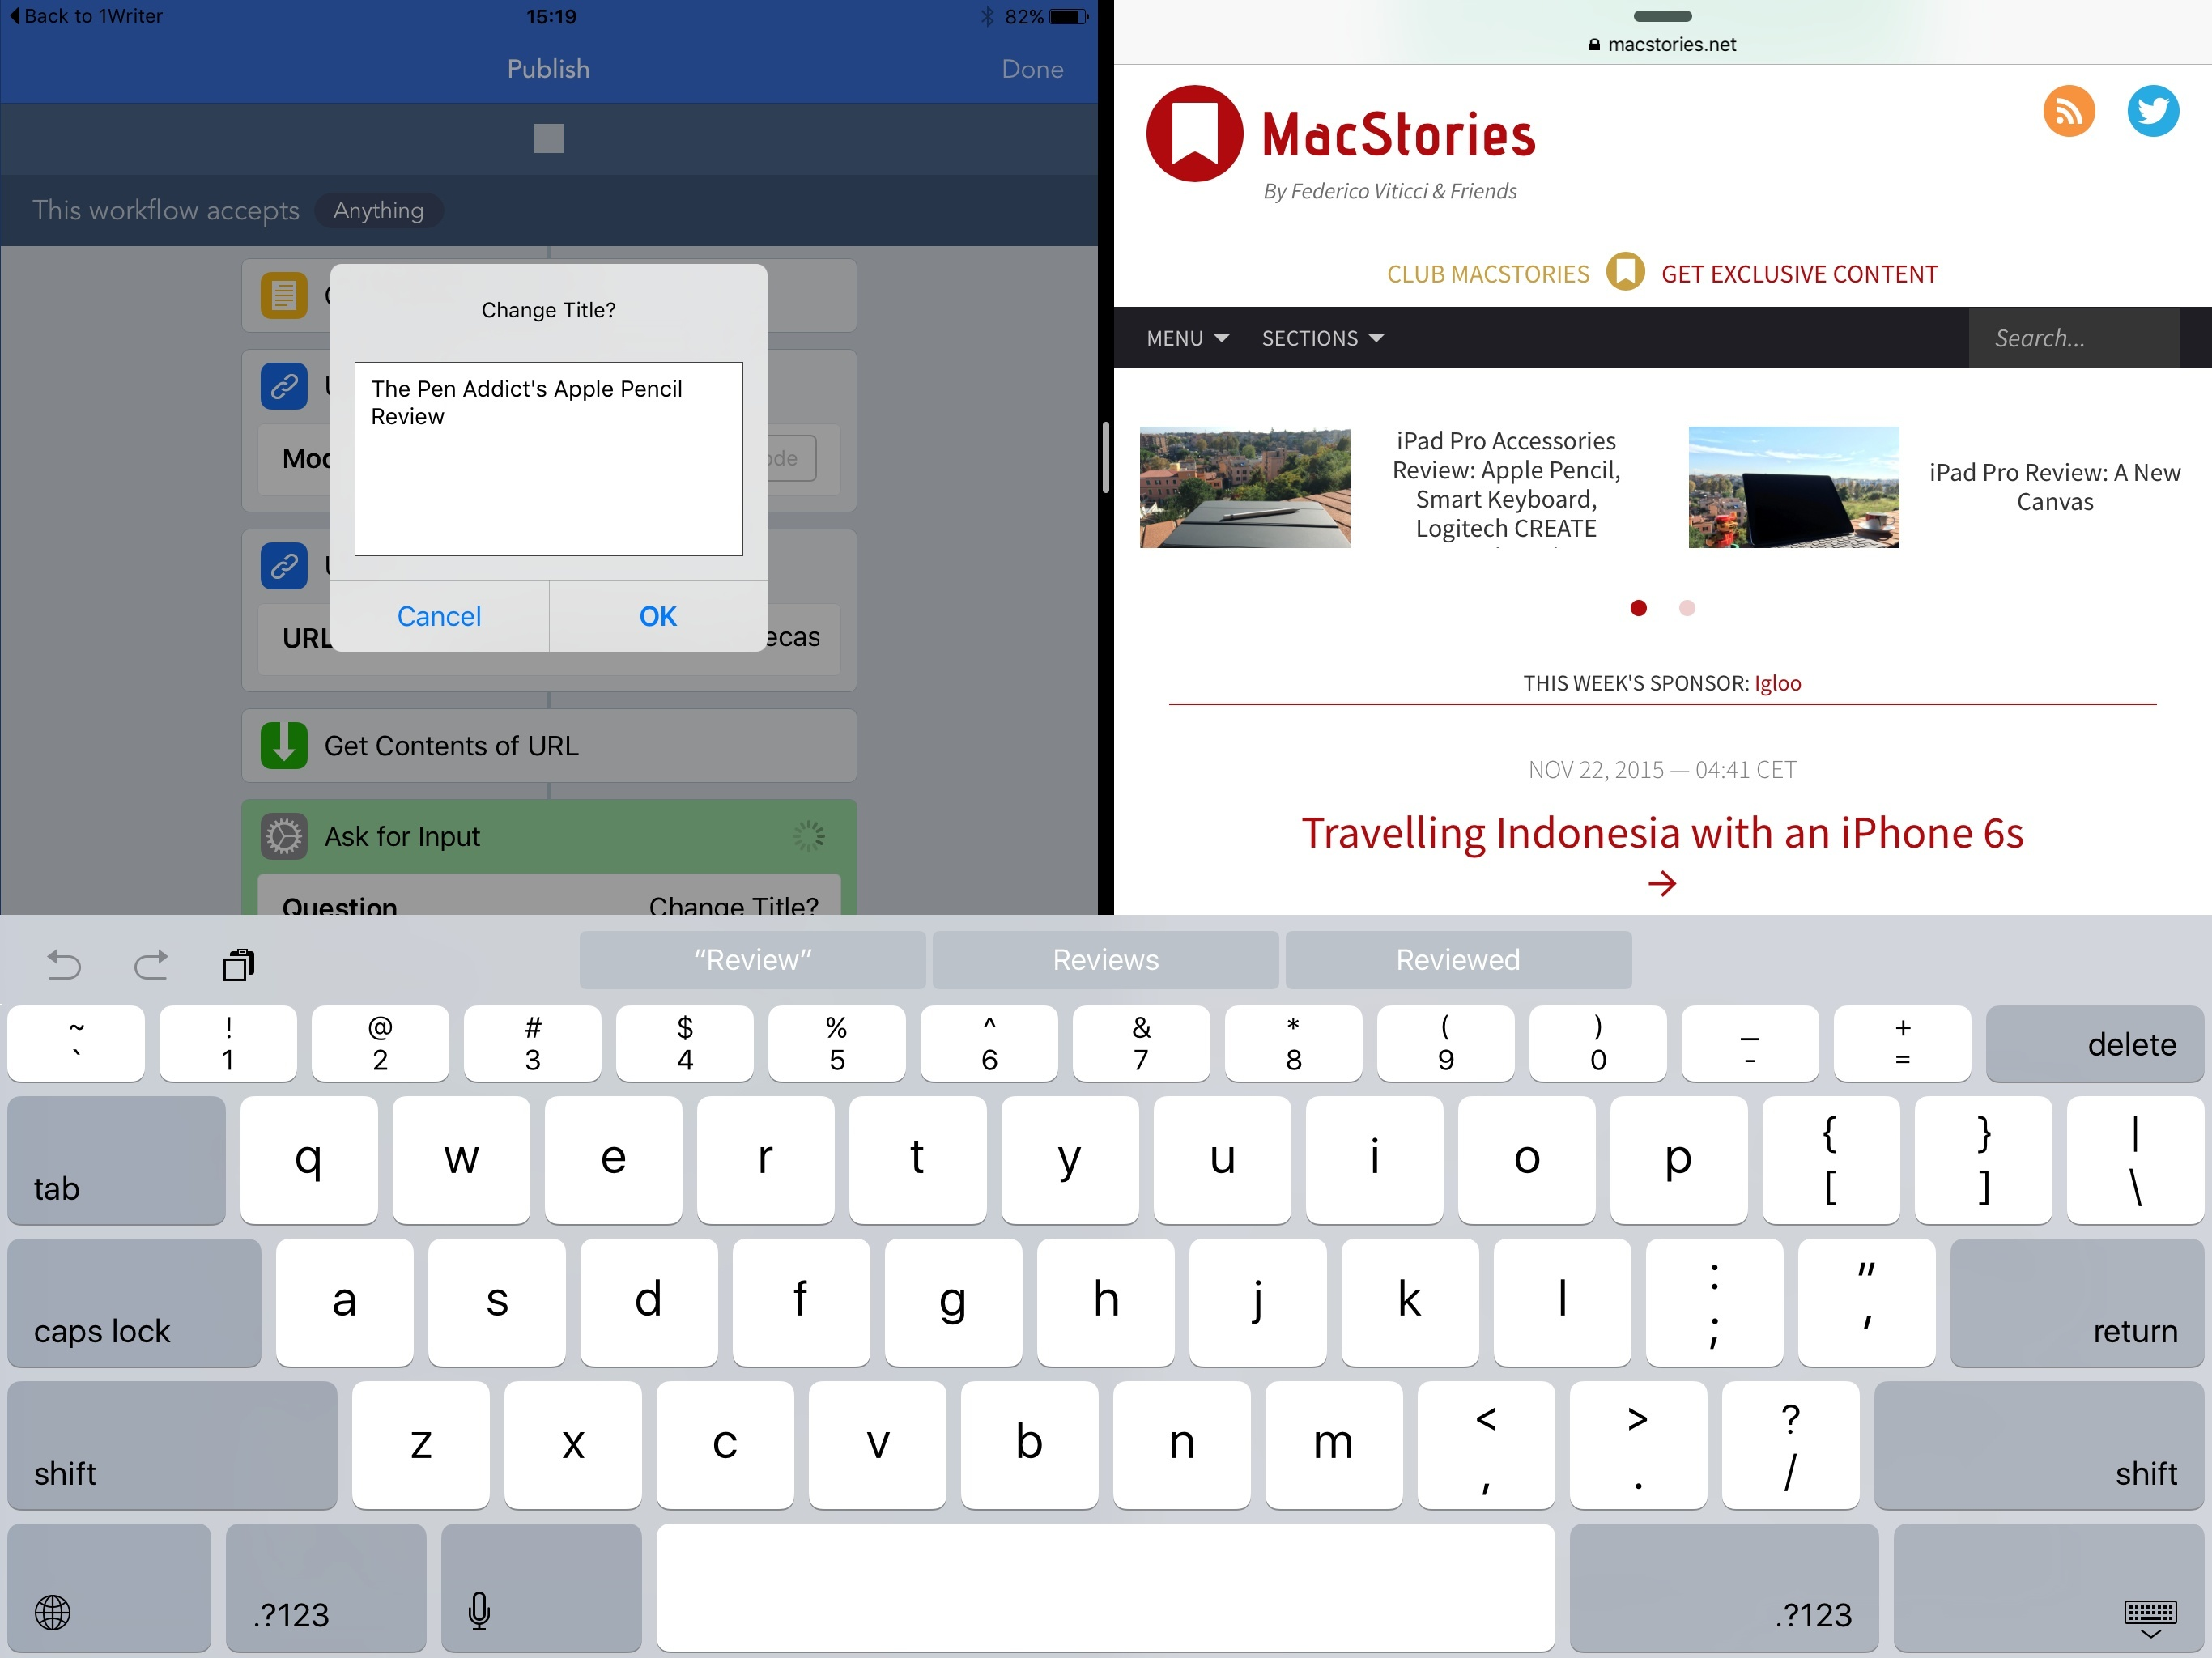 Posting to MacStories with Workflow.